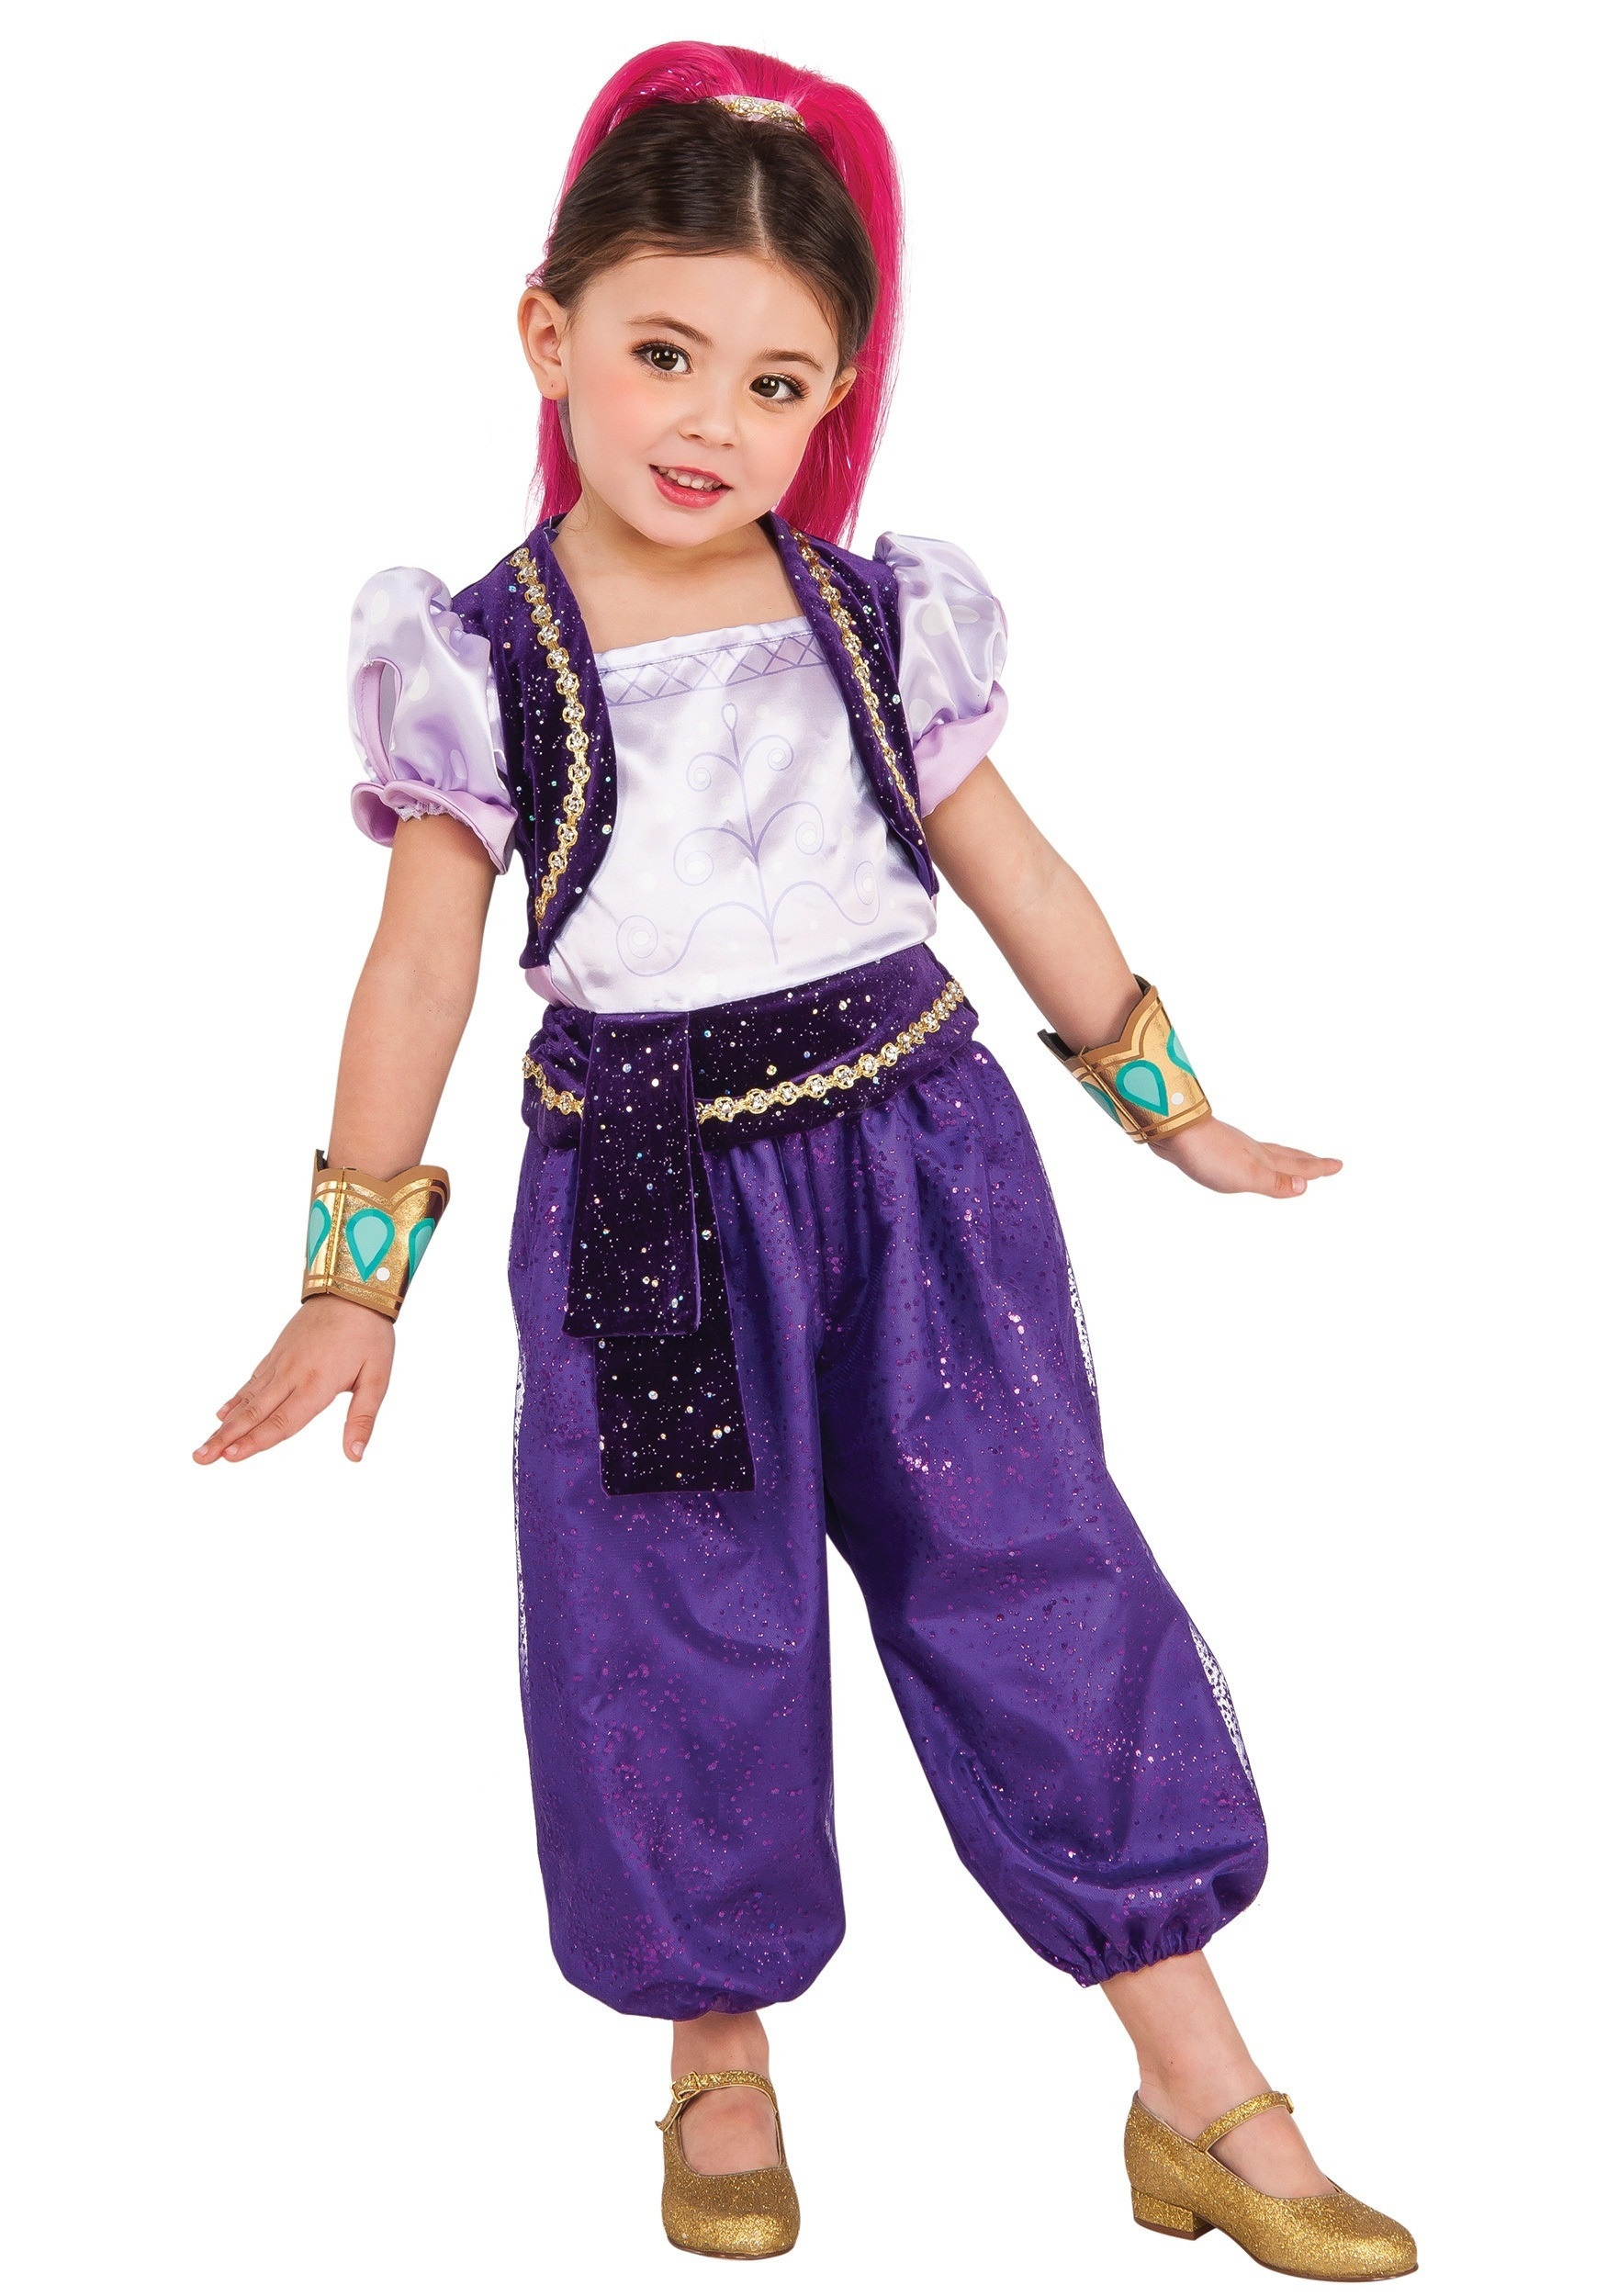 Best ideas about DIY Costumes For Girls . Save or Pin Girls Deluxe Shimmer Costume Now.